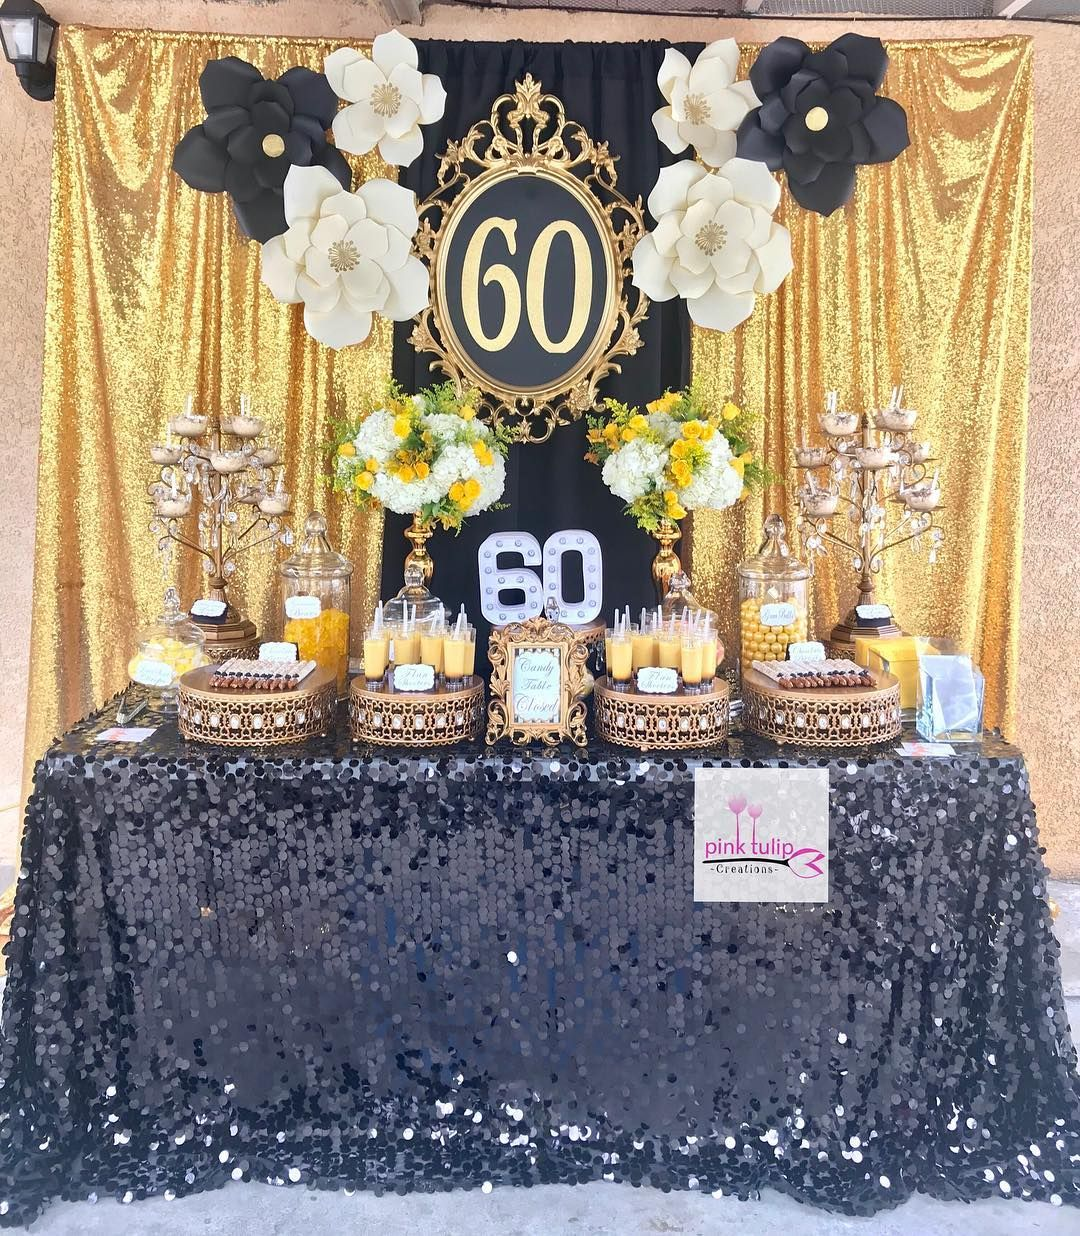 Pinktulipcreations Birthday Dessert Table Decorated In Black And